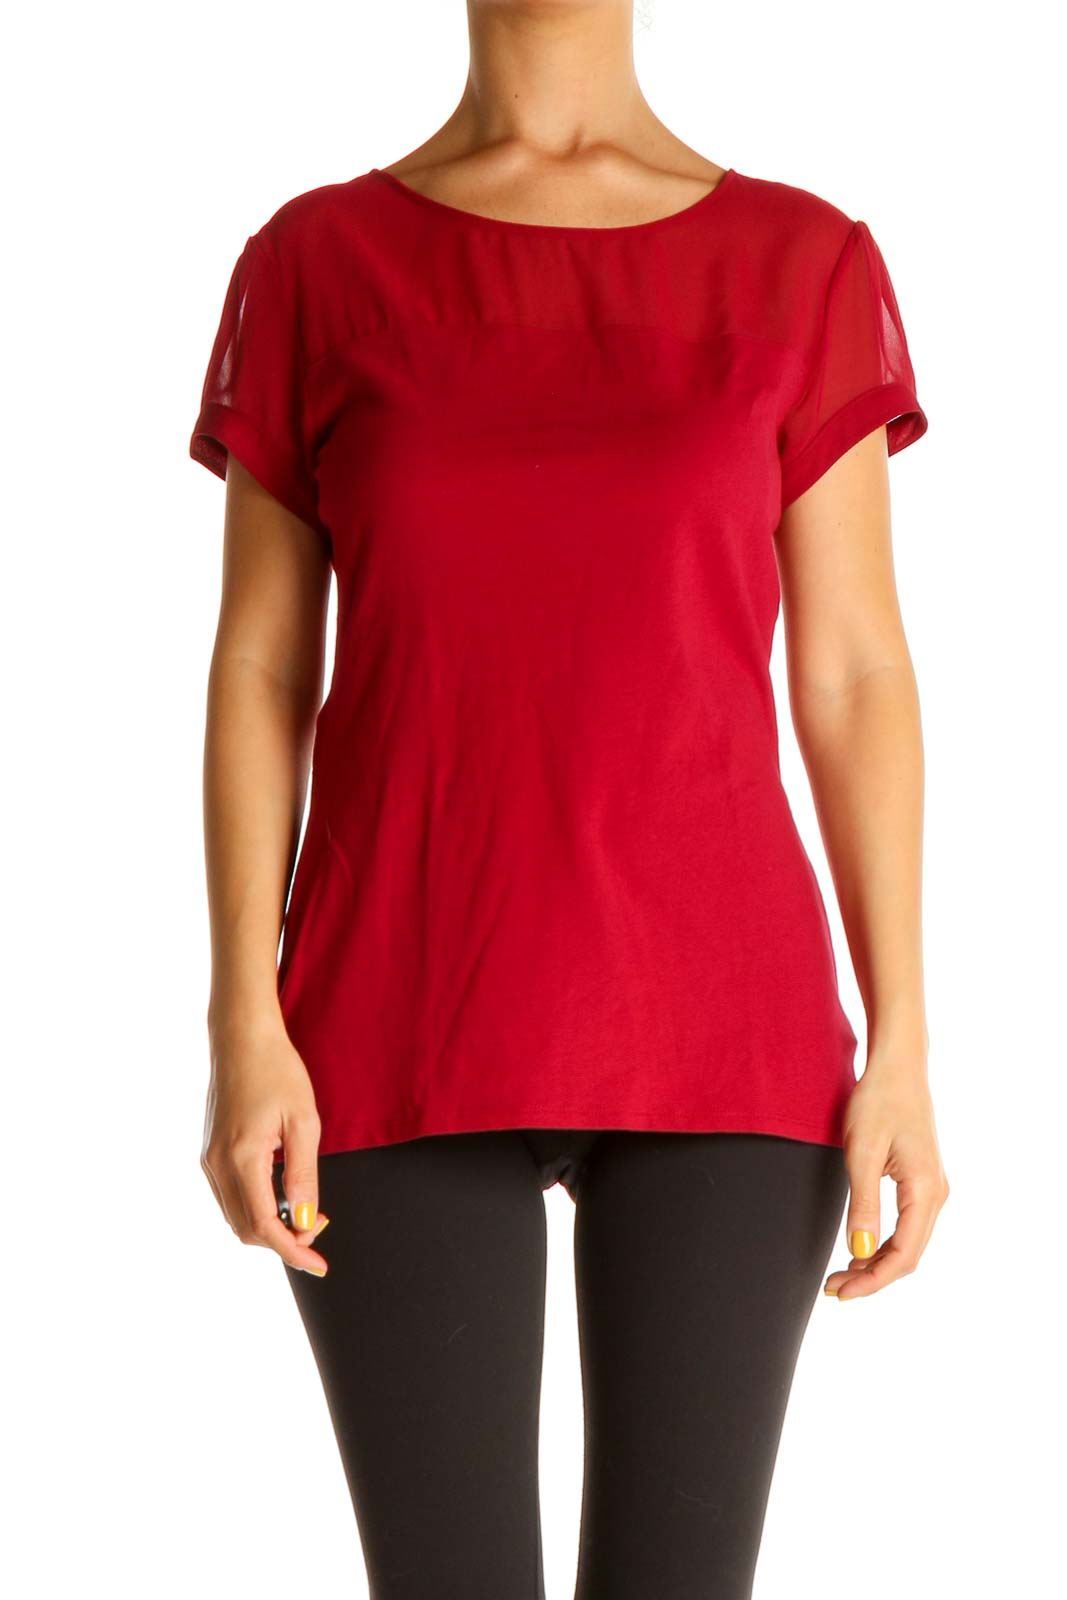 Red Solid Casual Blouse Front